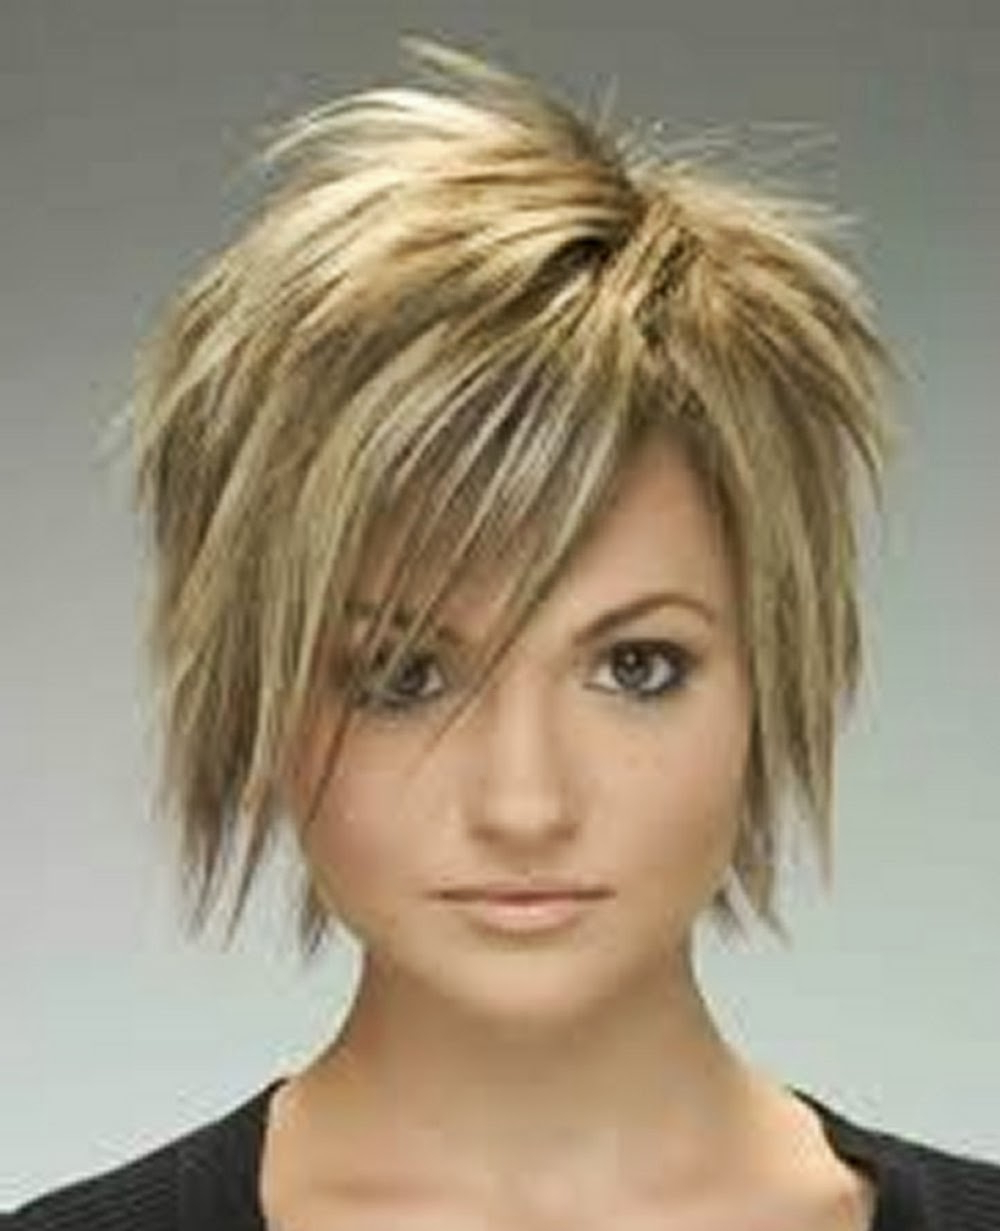 25 Fantastic Short Haircut Inspirations For 2015 – Tipsaholic Pertaining To Short Bob Hairstyles With Long Edgy Layers (View 19 of 25)